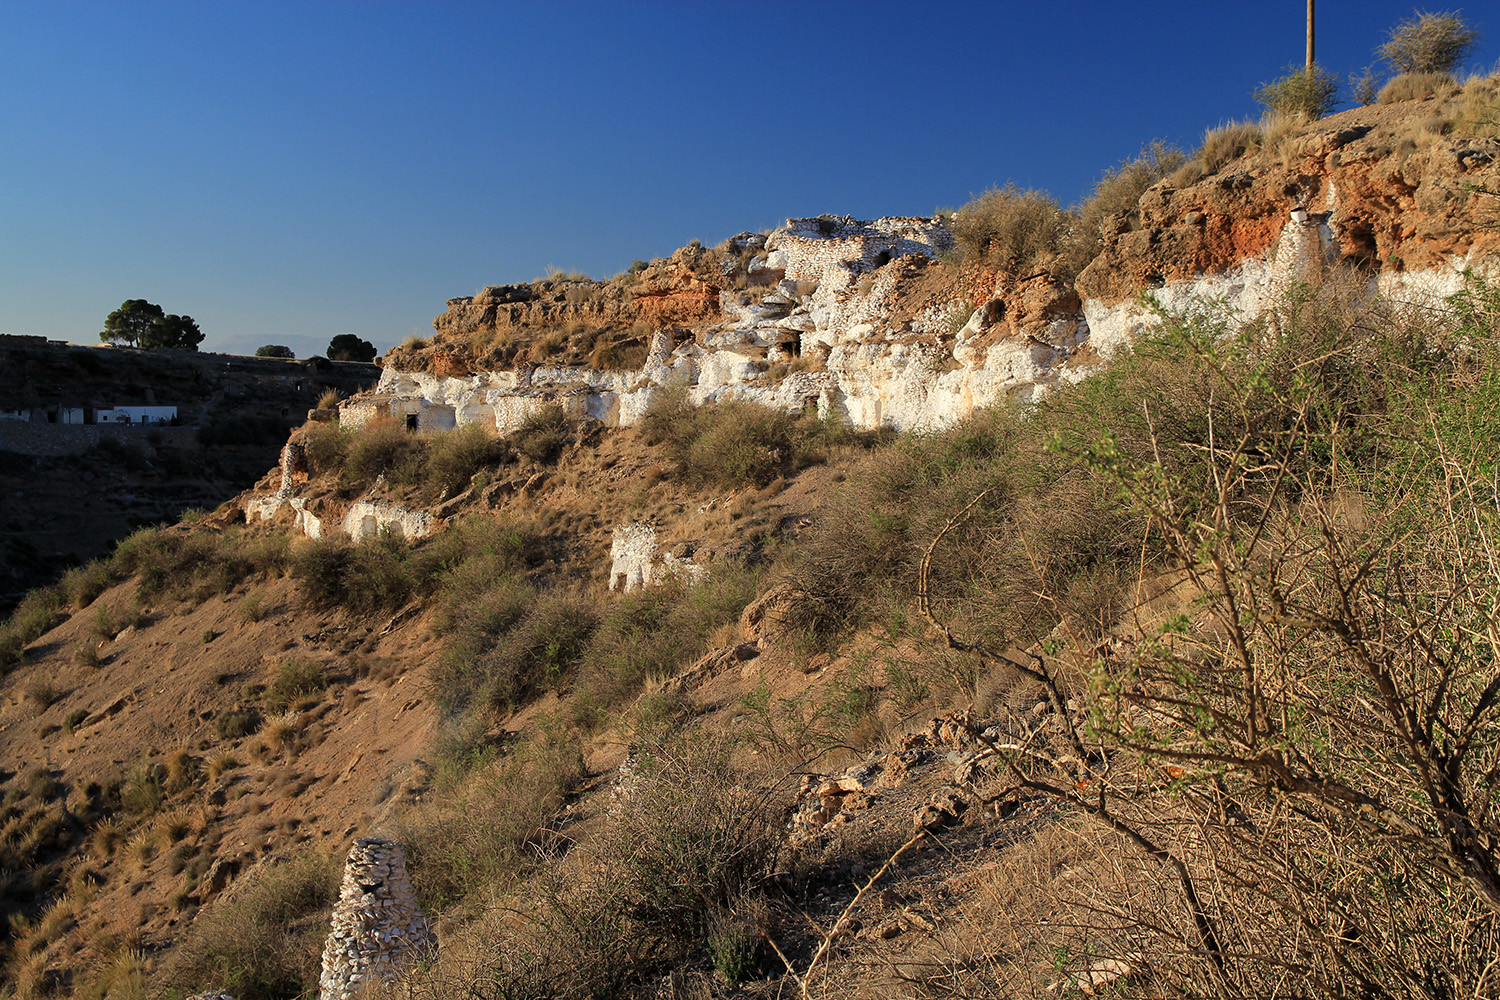 The view on the cave houses